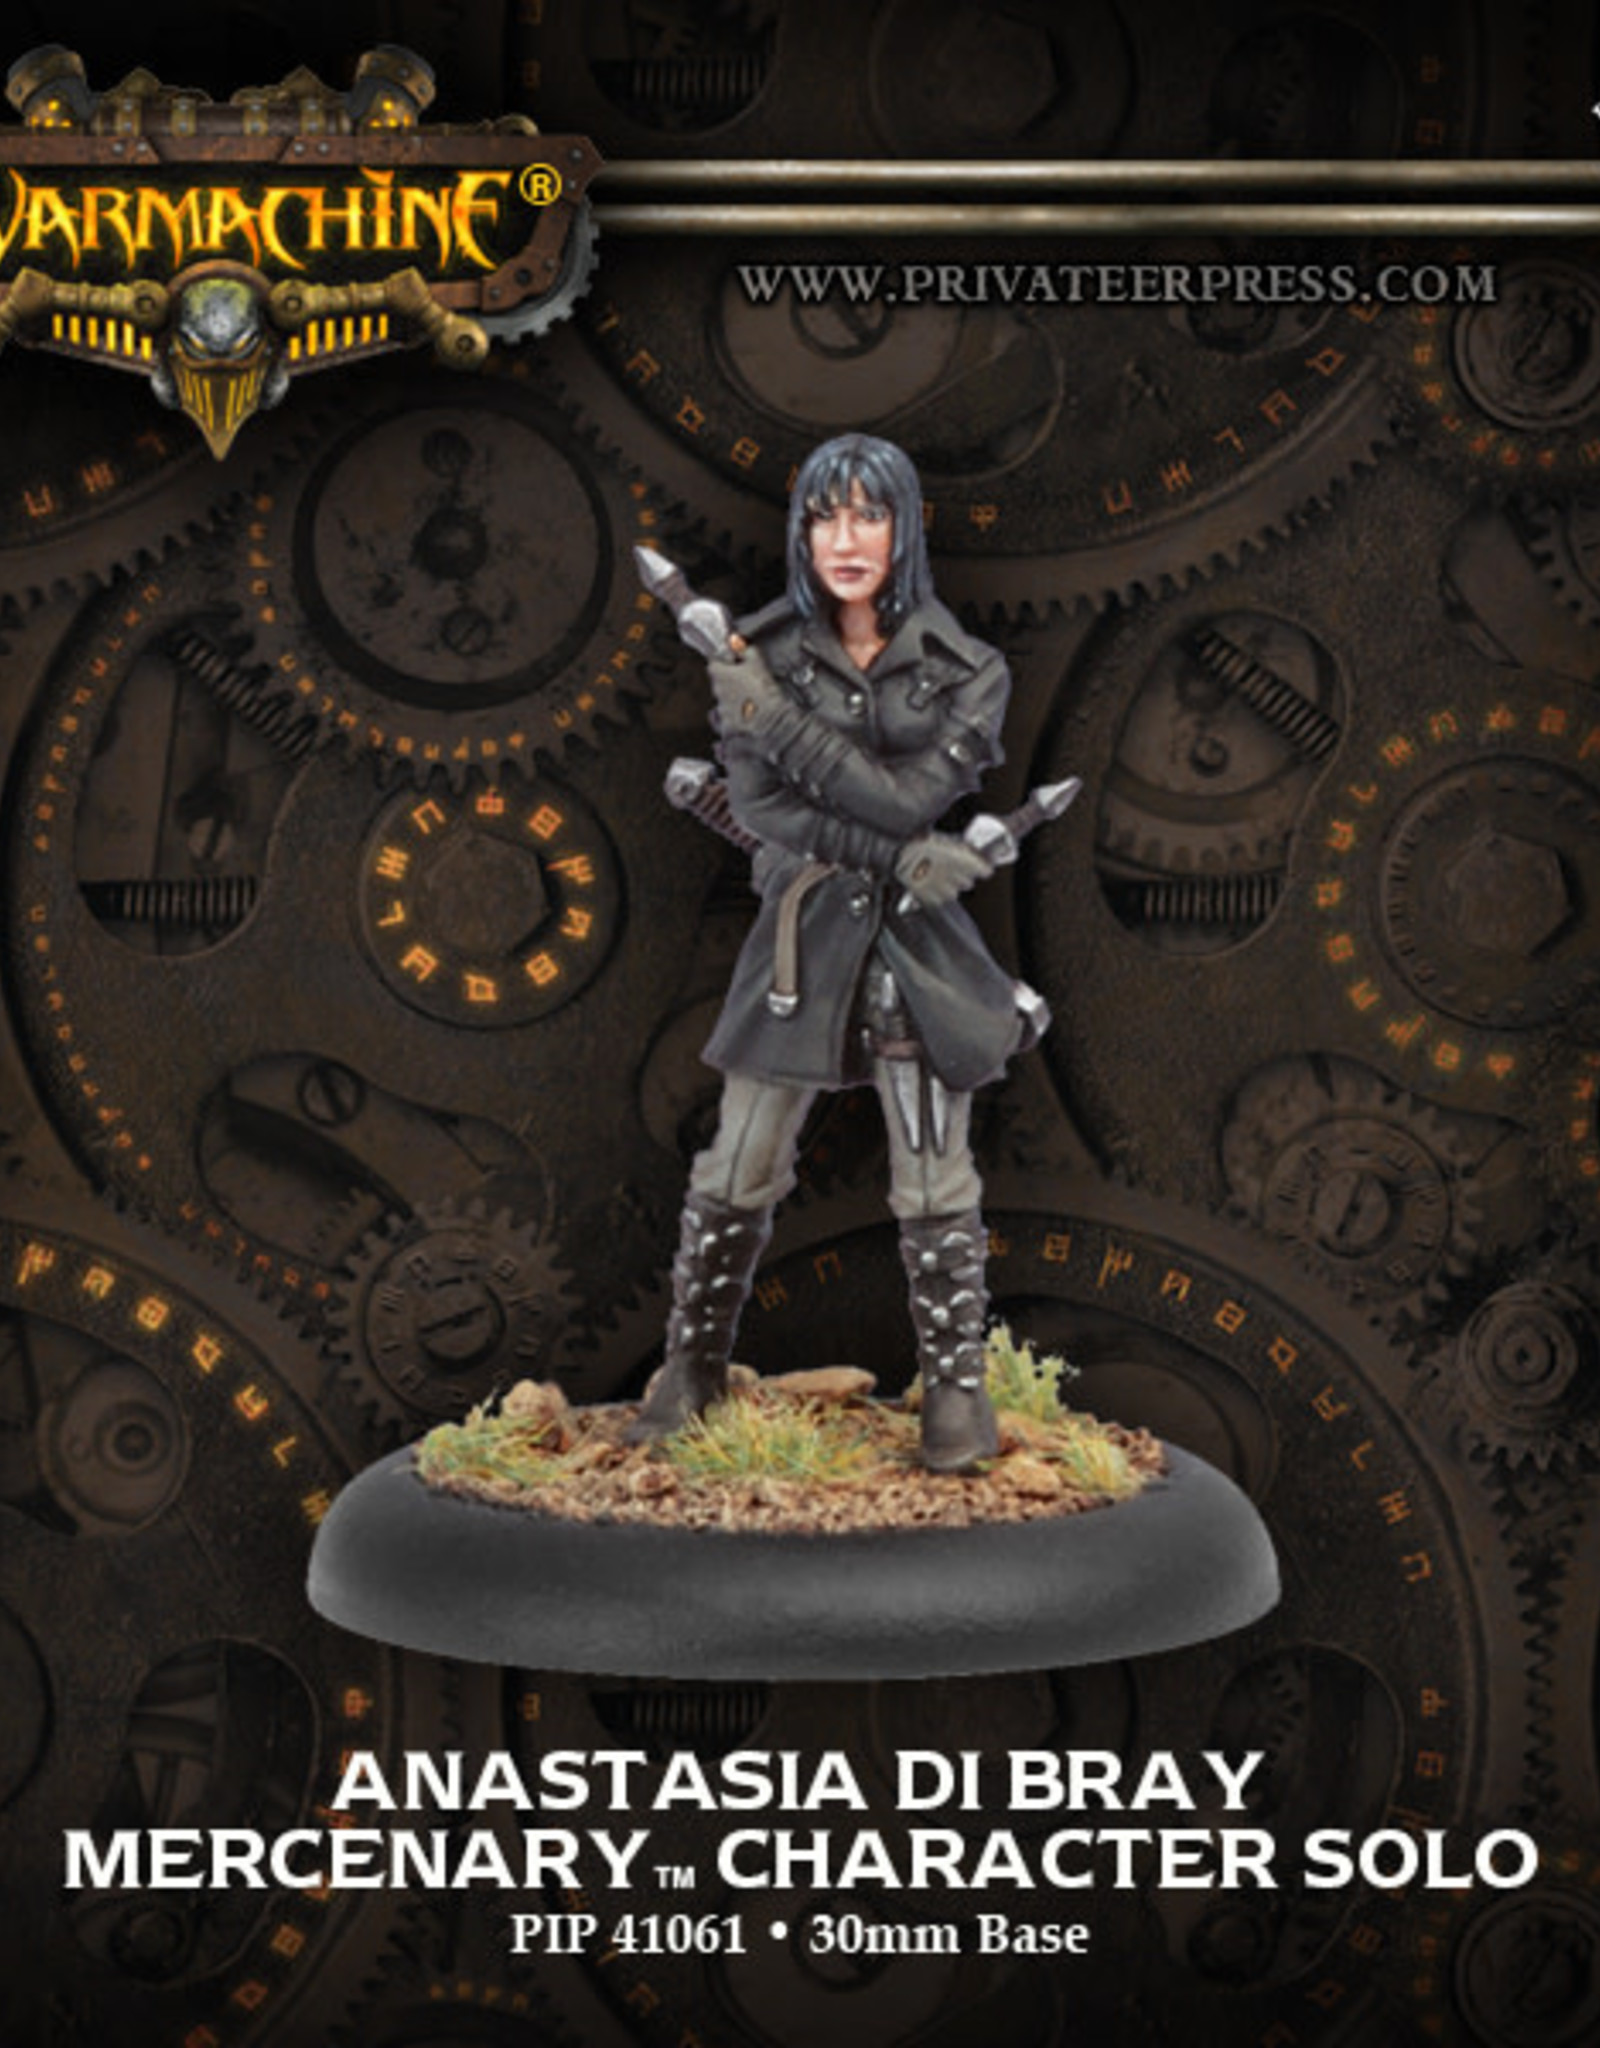 Warmachine Mercenaries - Anastasia di Bray